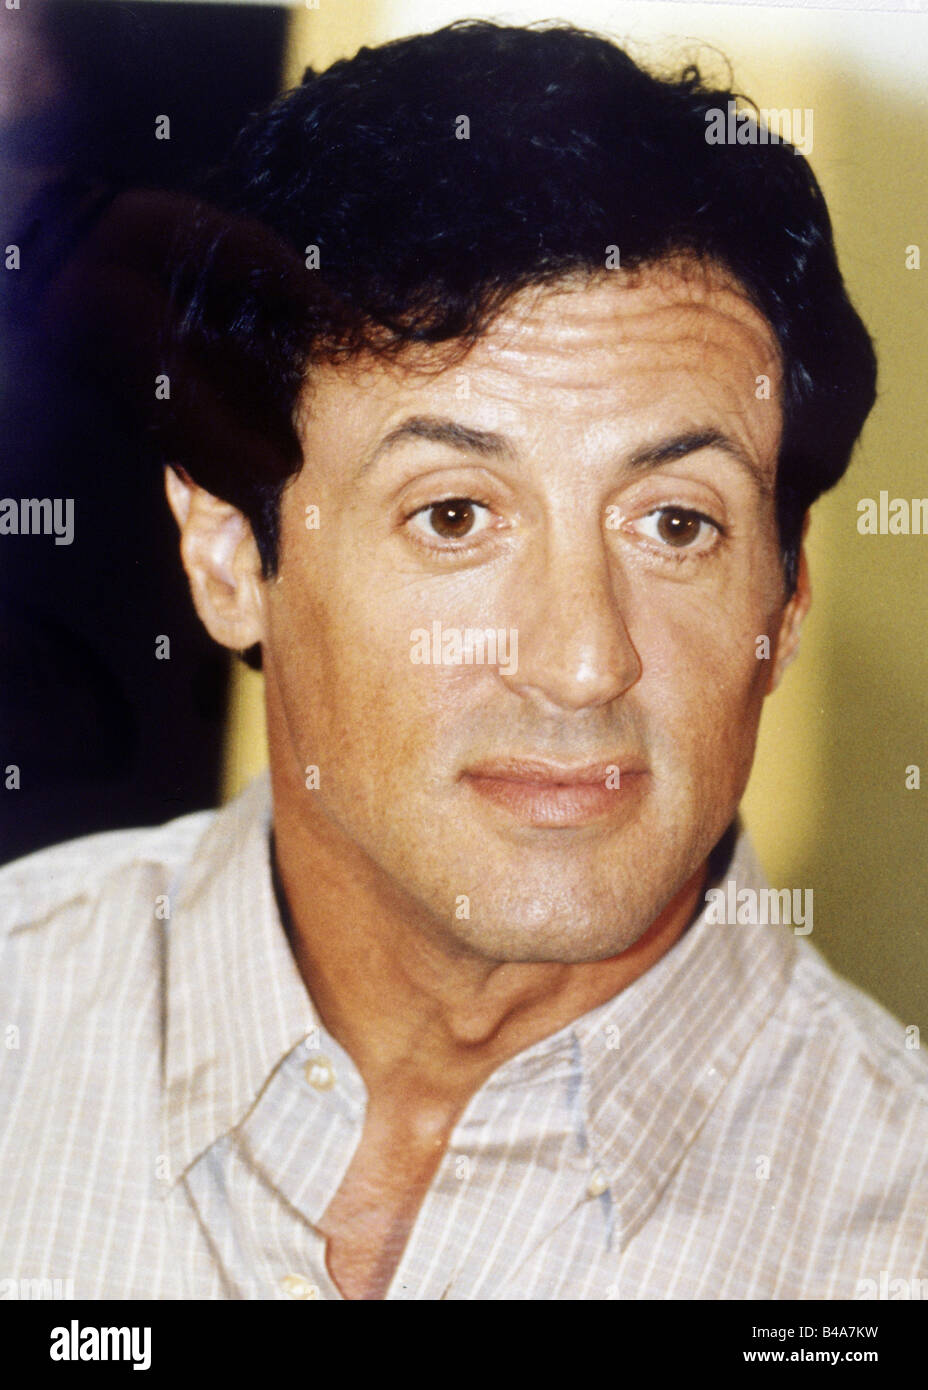 Stallone, Sylvester, * 6.7.1946, American actor, portrait, Hamburg, 1995, Additional-Rights-Clearances-NA - Stock Image